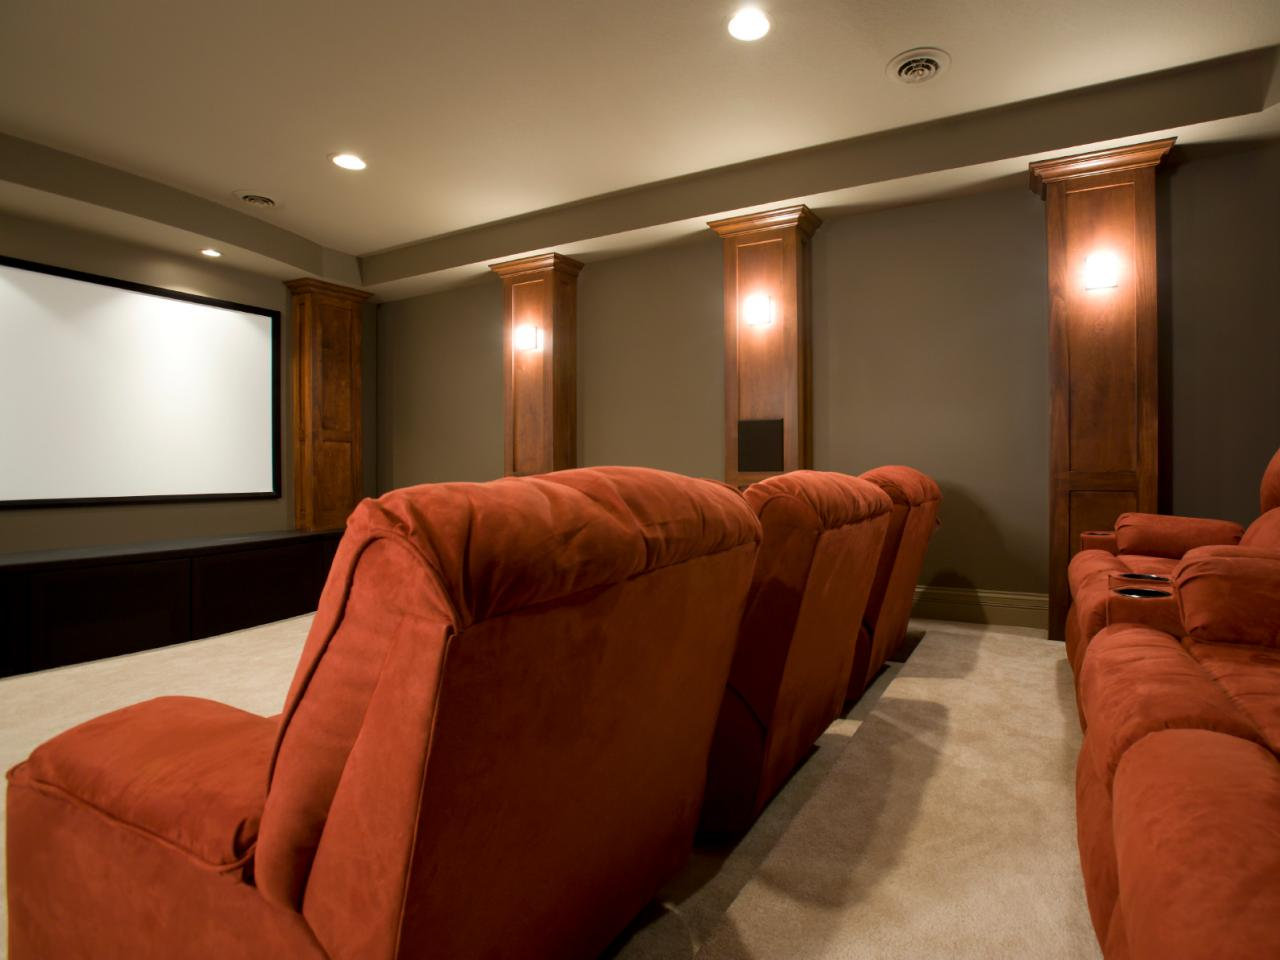 Home Theater Design Basics | DIY